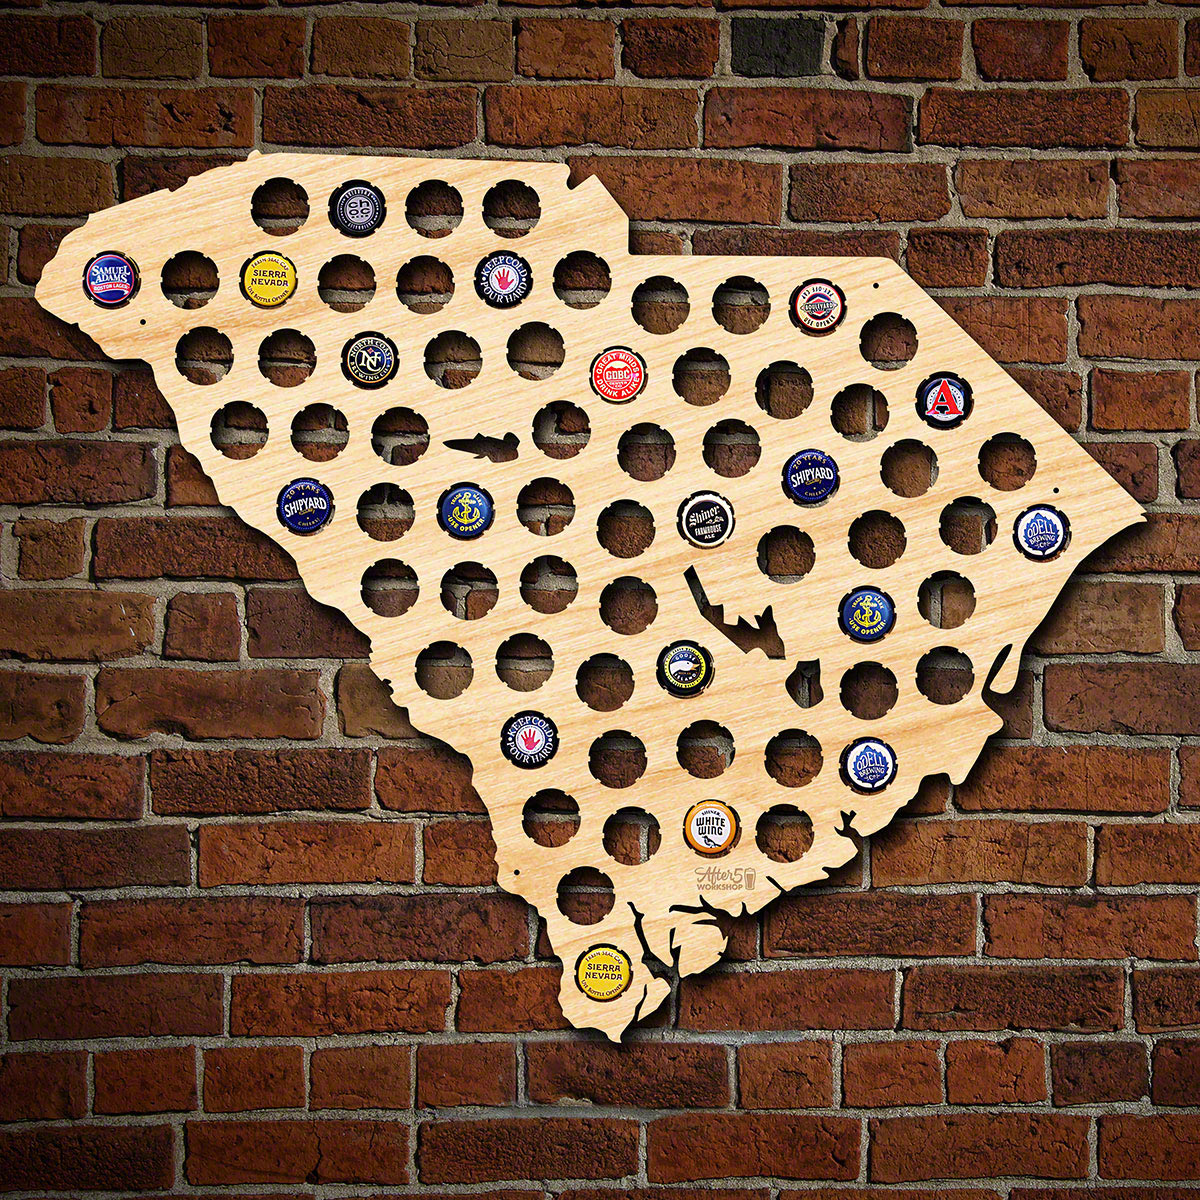 South Carolina Beer Cap Map